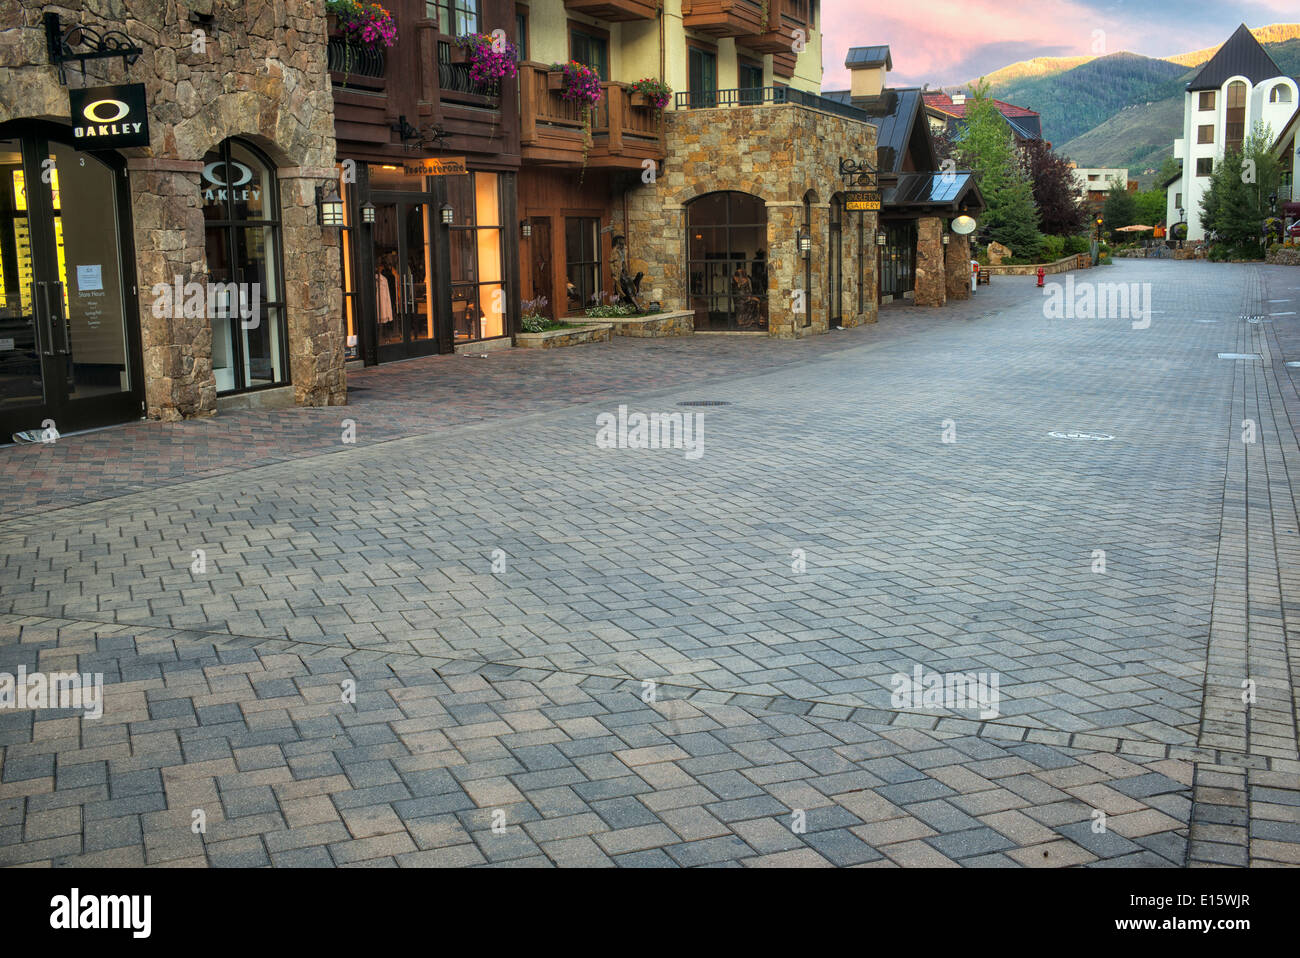 Stone roadway in Vail Village. Vail, Colorado - Stock Image